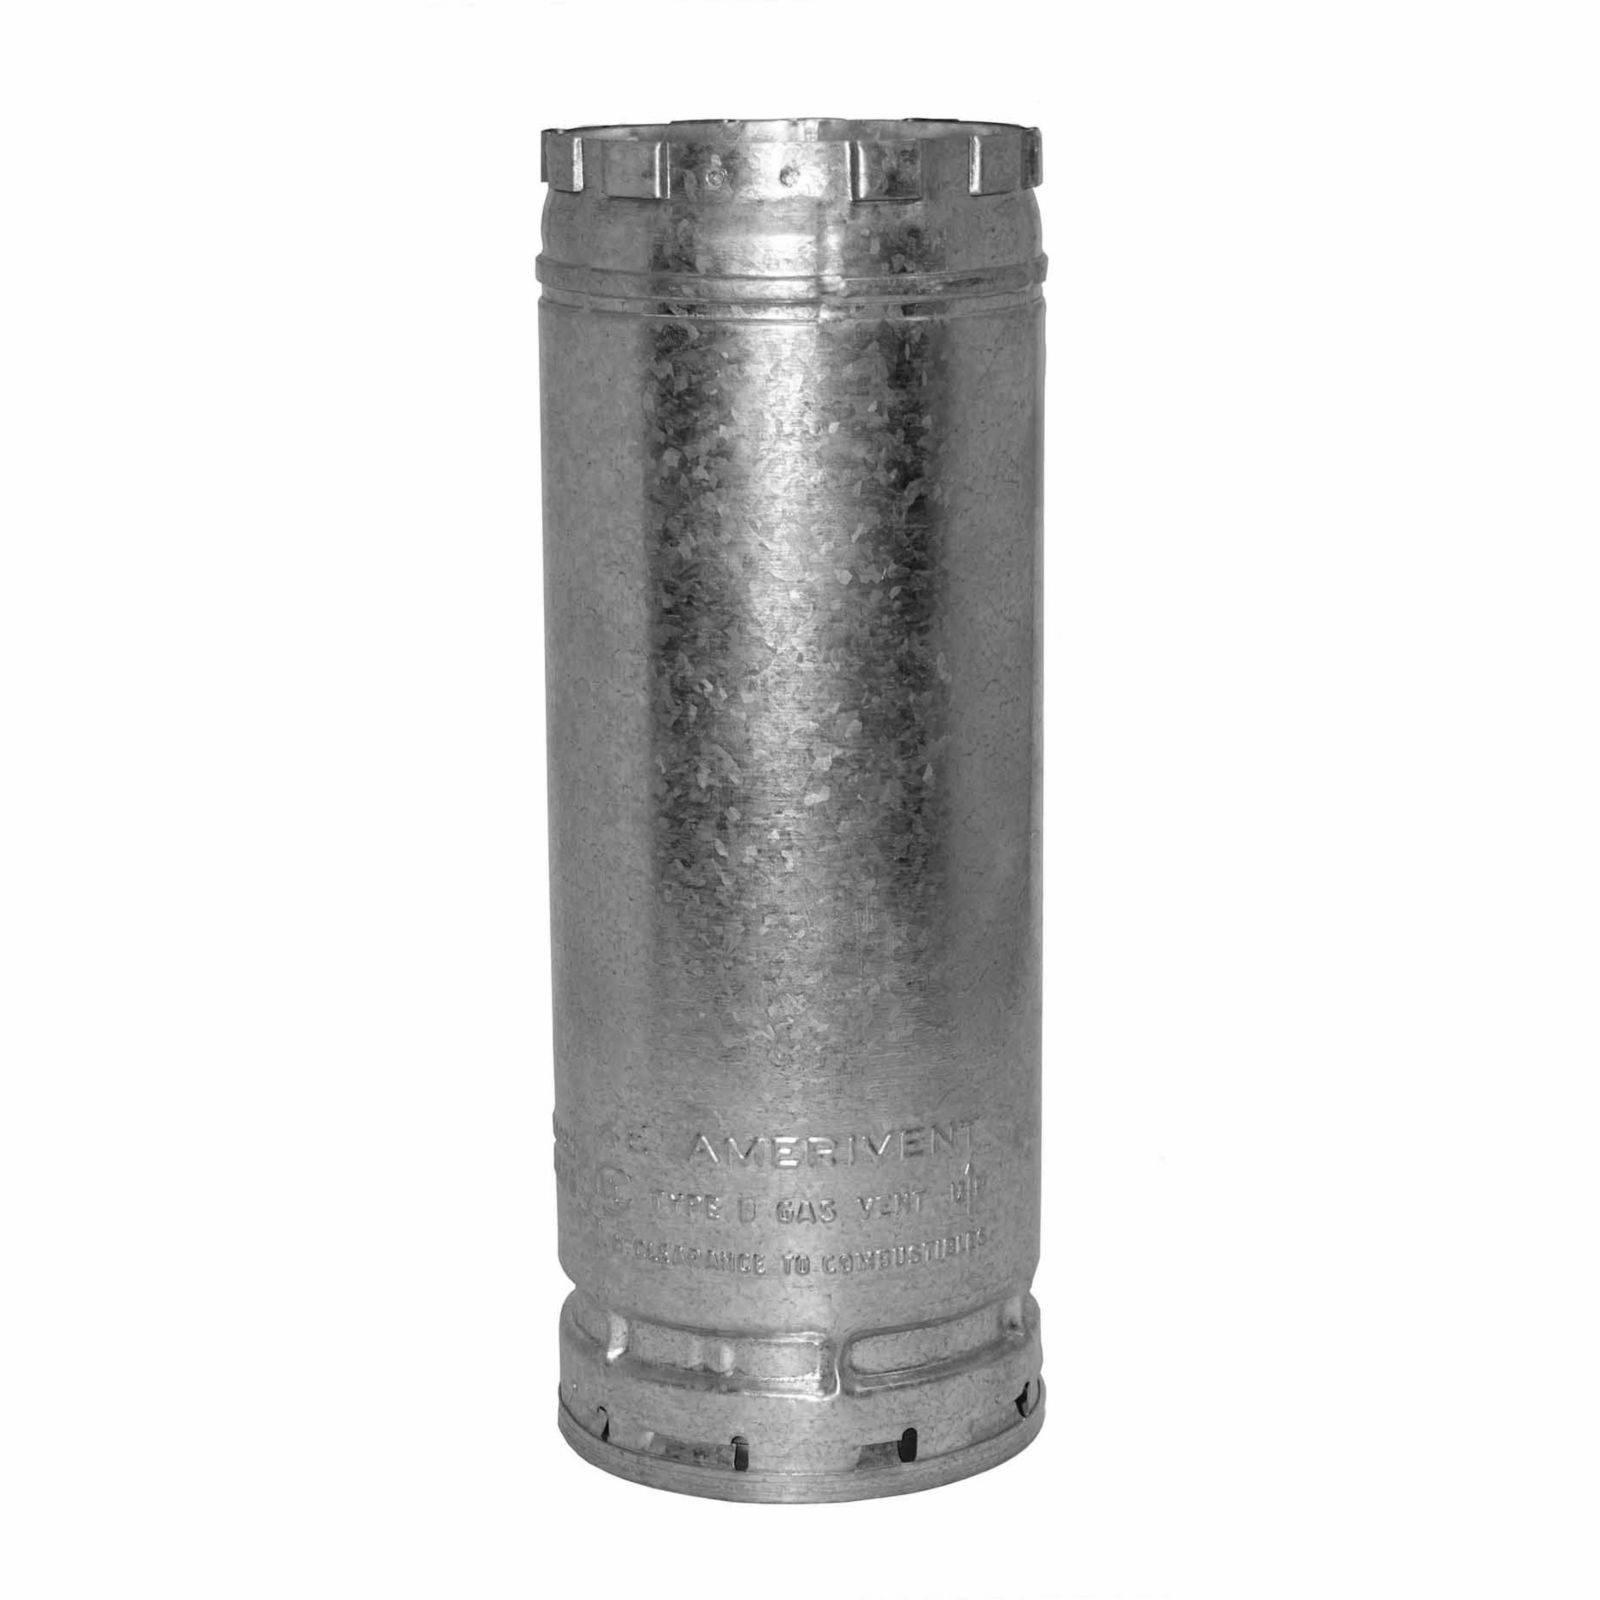 "AmeriVent 5E6 - Pipe Section Type B Gas Vent, 5"" Round X 6"" Length"